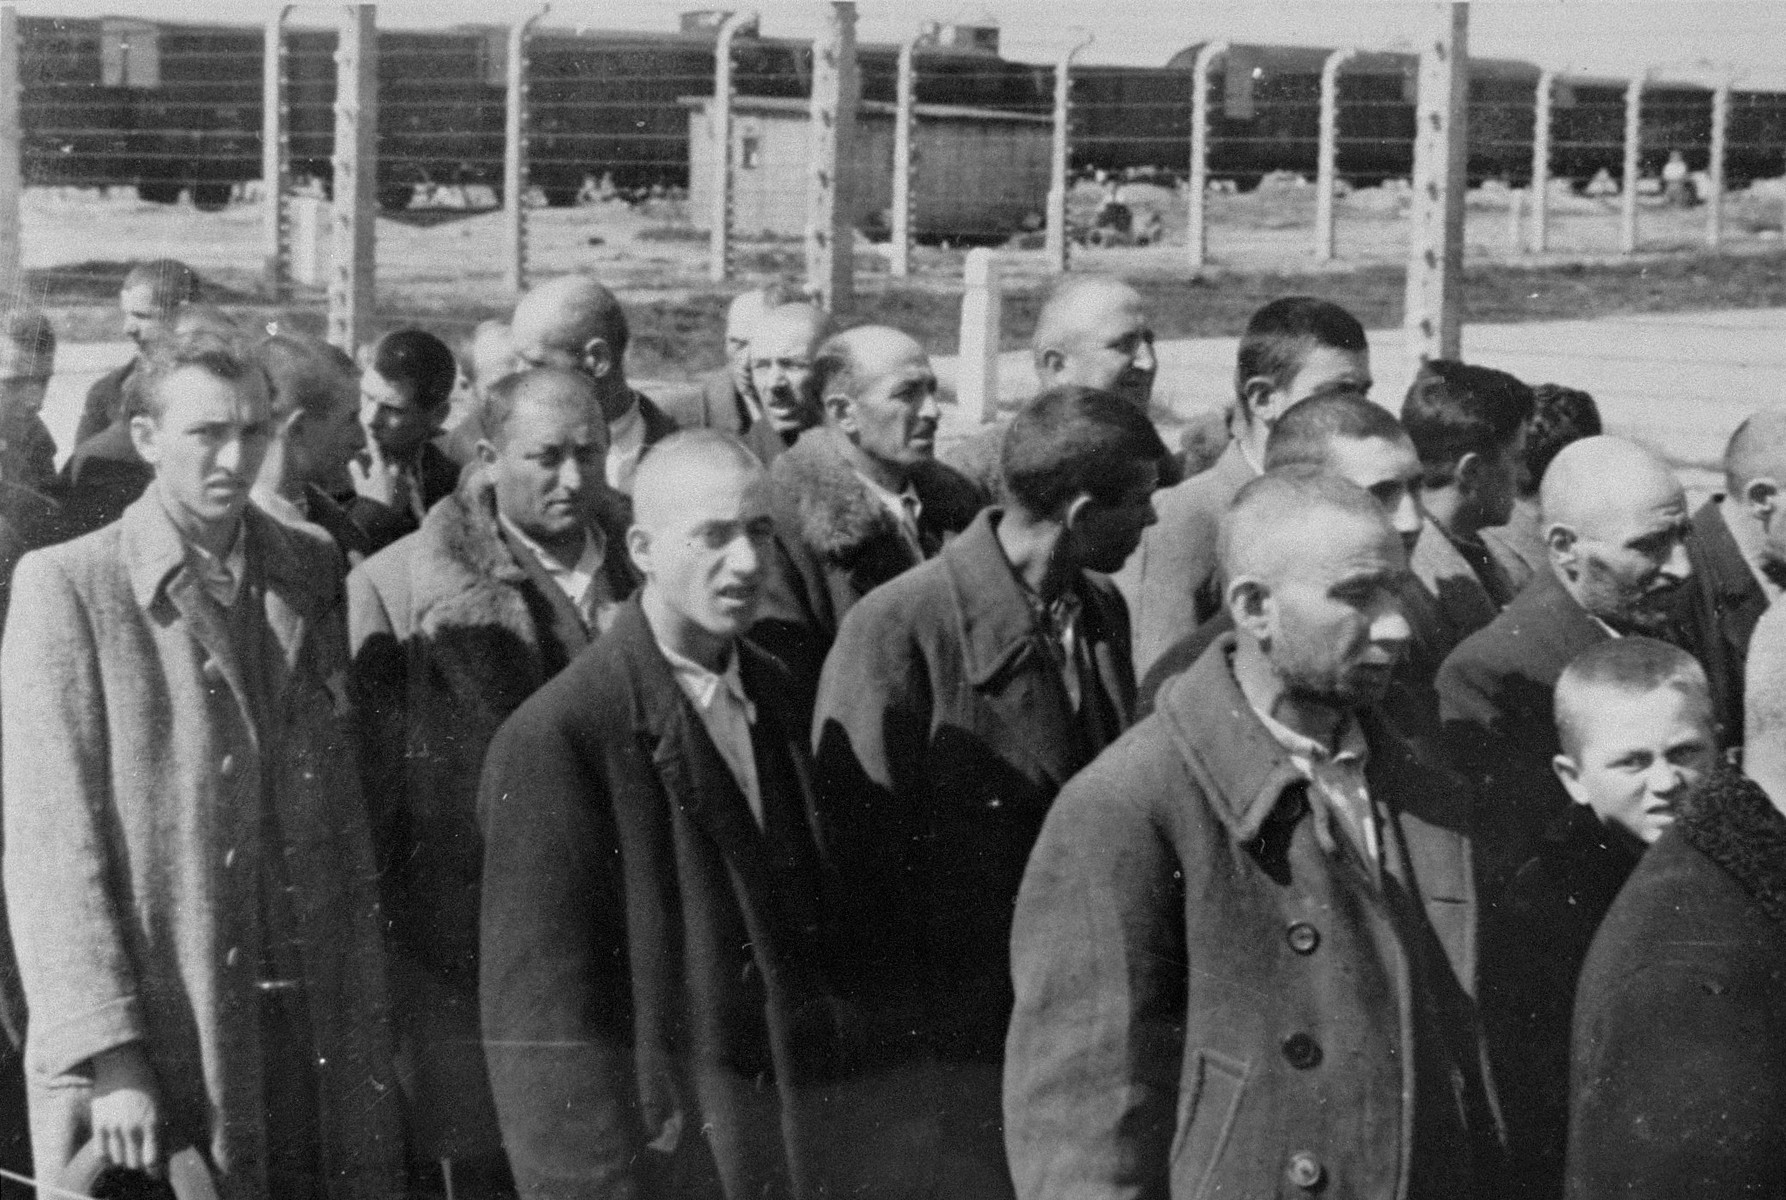 """Jews from Subcarpathian Rus who have been selected for forced labor at Auschwitz-Birkenau, are marched to another section of the camp.  The head of a young boy can be seen on the right. Normally a child this age would have been sent to die with his mother, but sometimes they would be taken as a """"pipl"""", or personal page, to one of the guards.  Some children were chosen for """"medical experiments"""" and a few were put in a labor brigade of their own."""